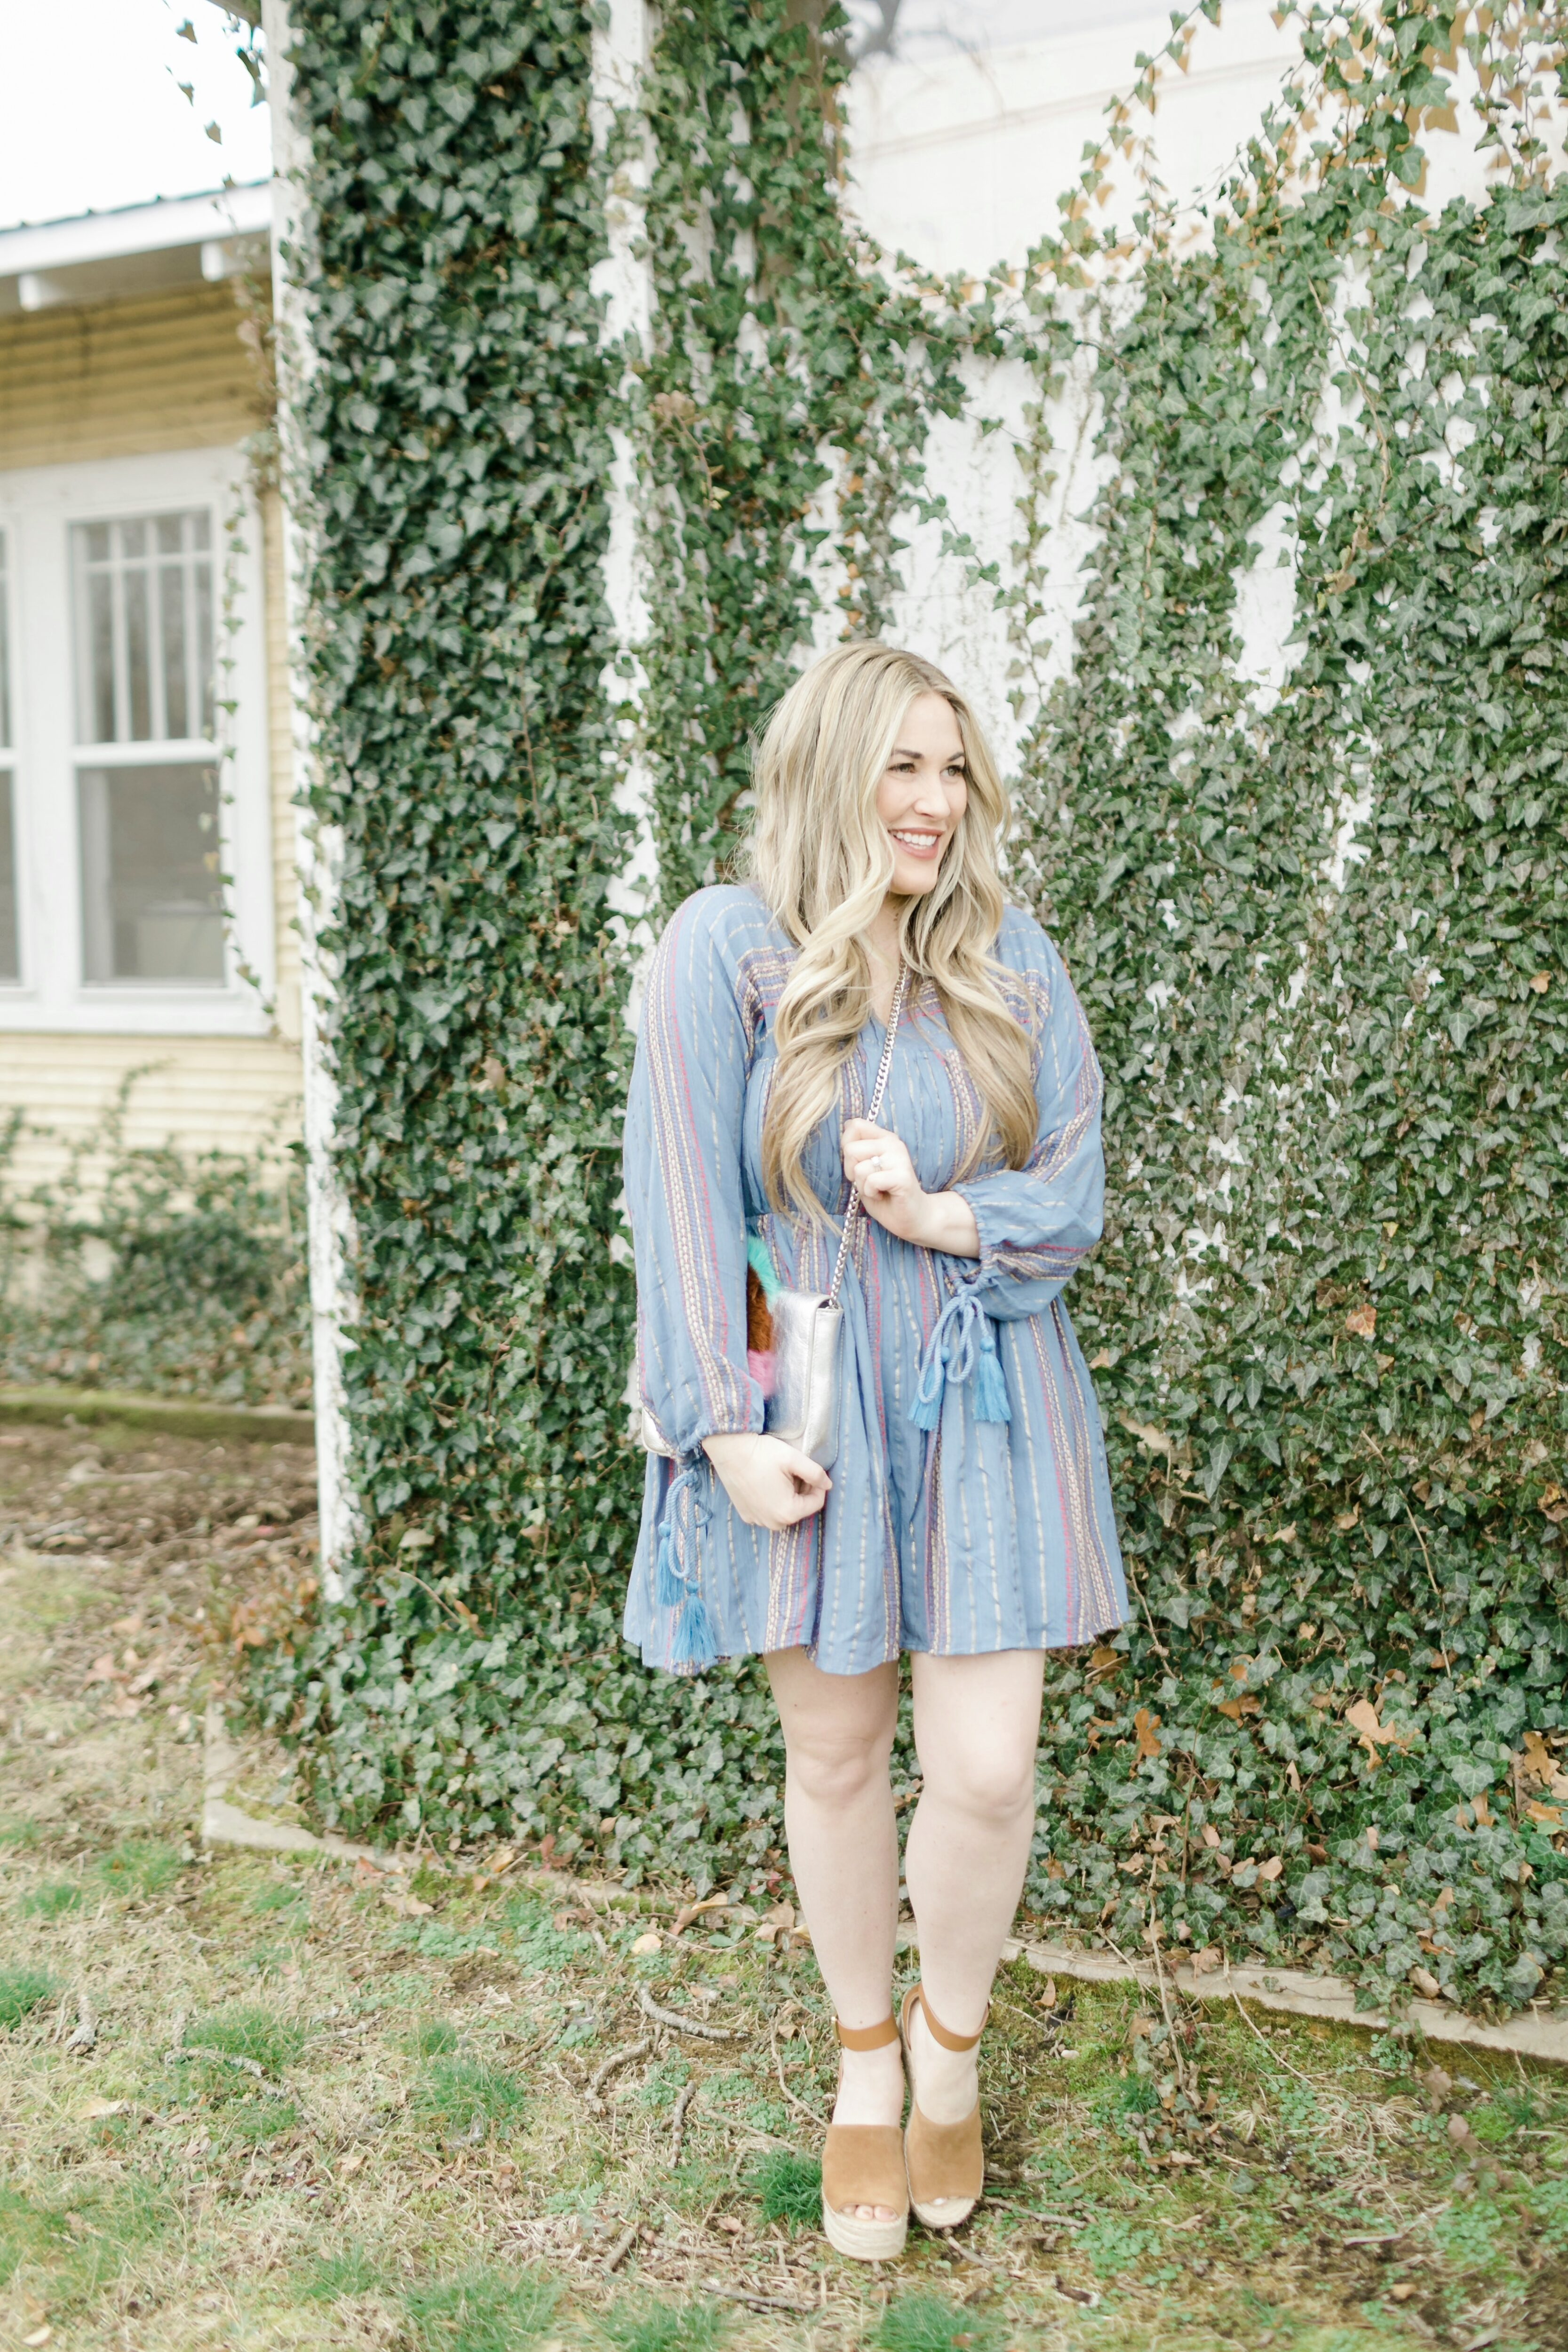 Cute spring dresses featured by top Memphis fashion blogger, Walking in Memphis in High Heels: image of a woman wearing an ASOS denim striped dress